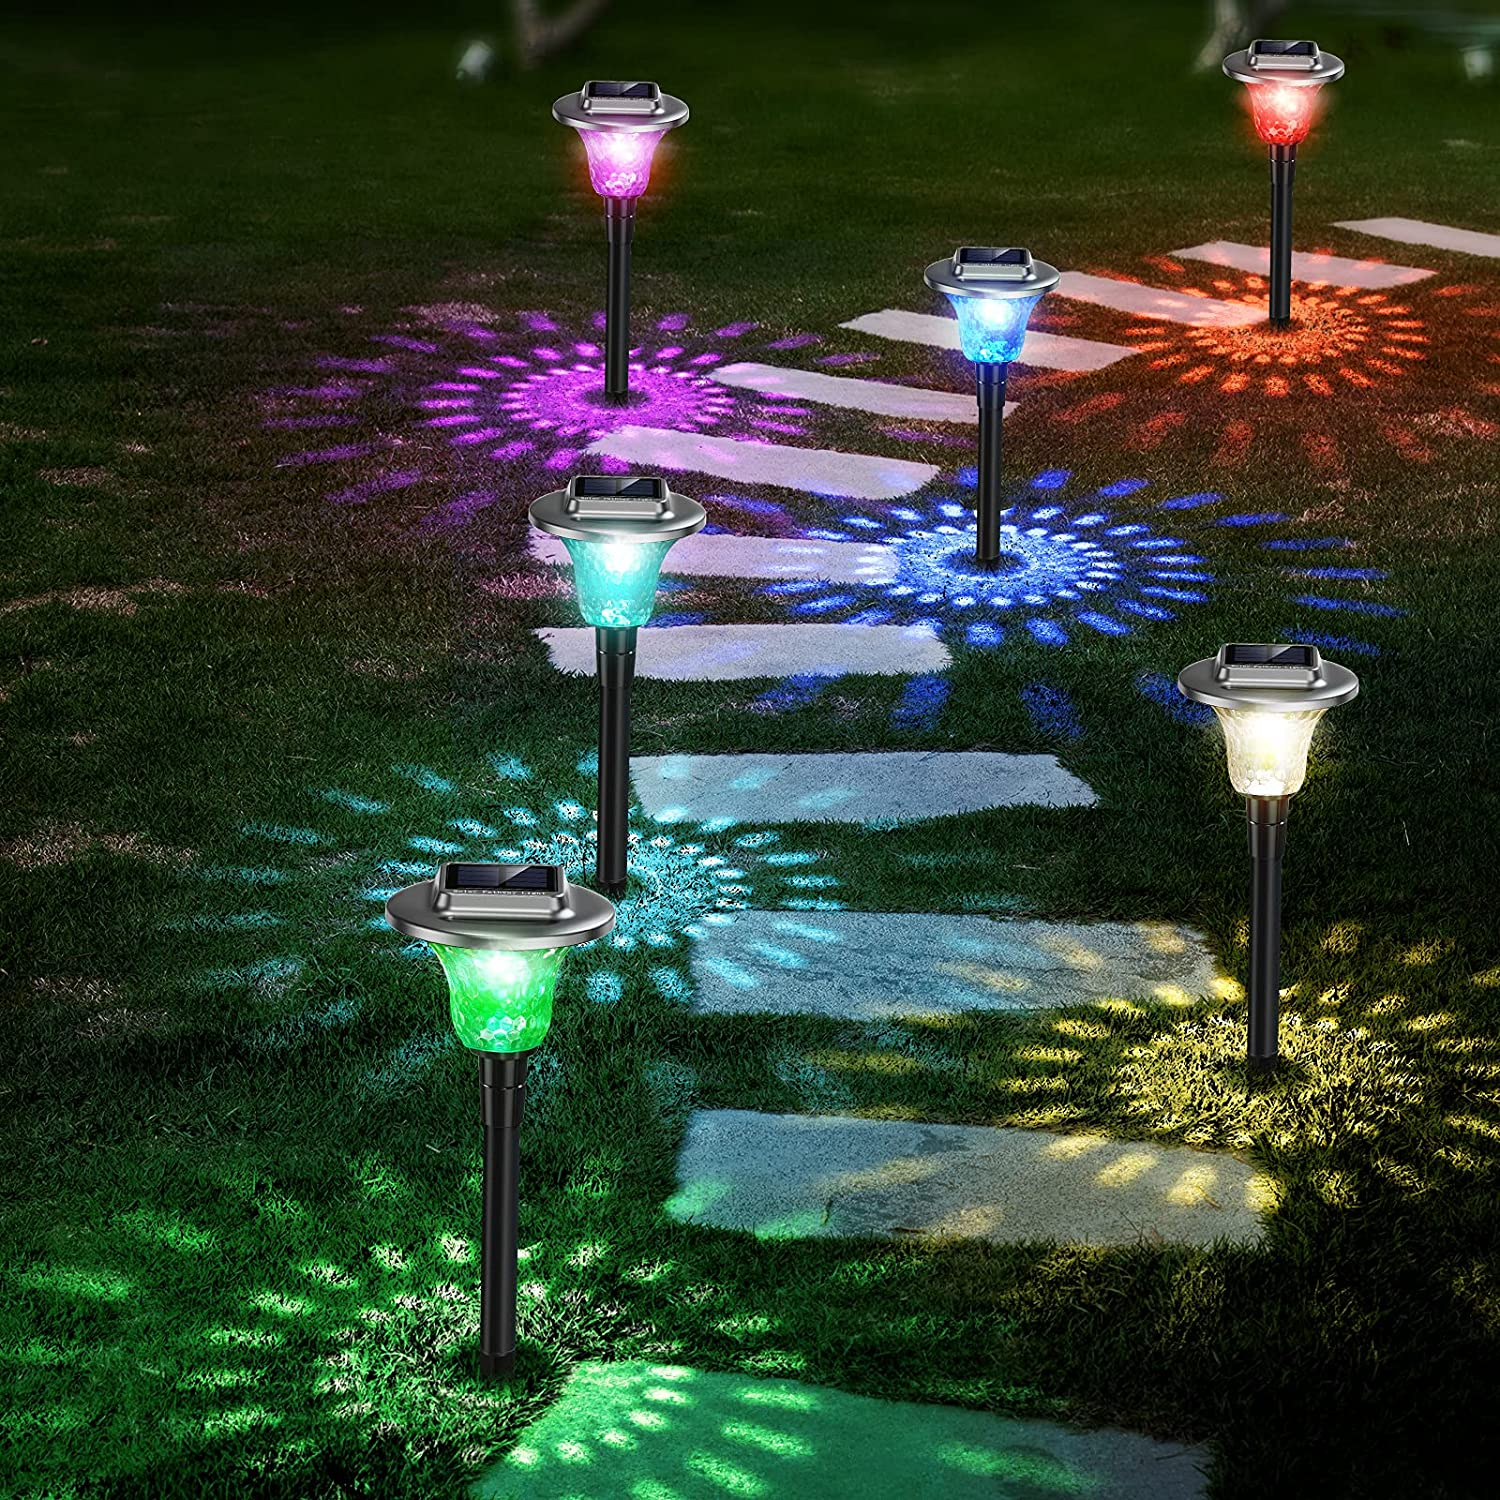 Jack & Rose Solar Lights Outdoor Pathway with Auto 7 Colors Changing, Solar Powered Garden Yard Lights, Stainless Steel Waterproof Landscape Path Lights for Patio, Lawn, Yard, Walkway (6 Pack)